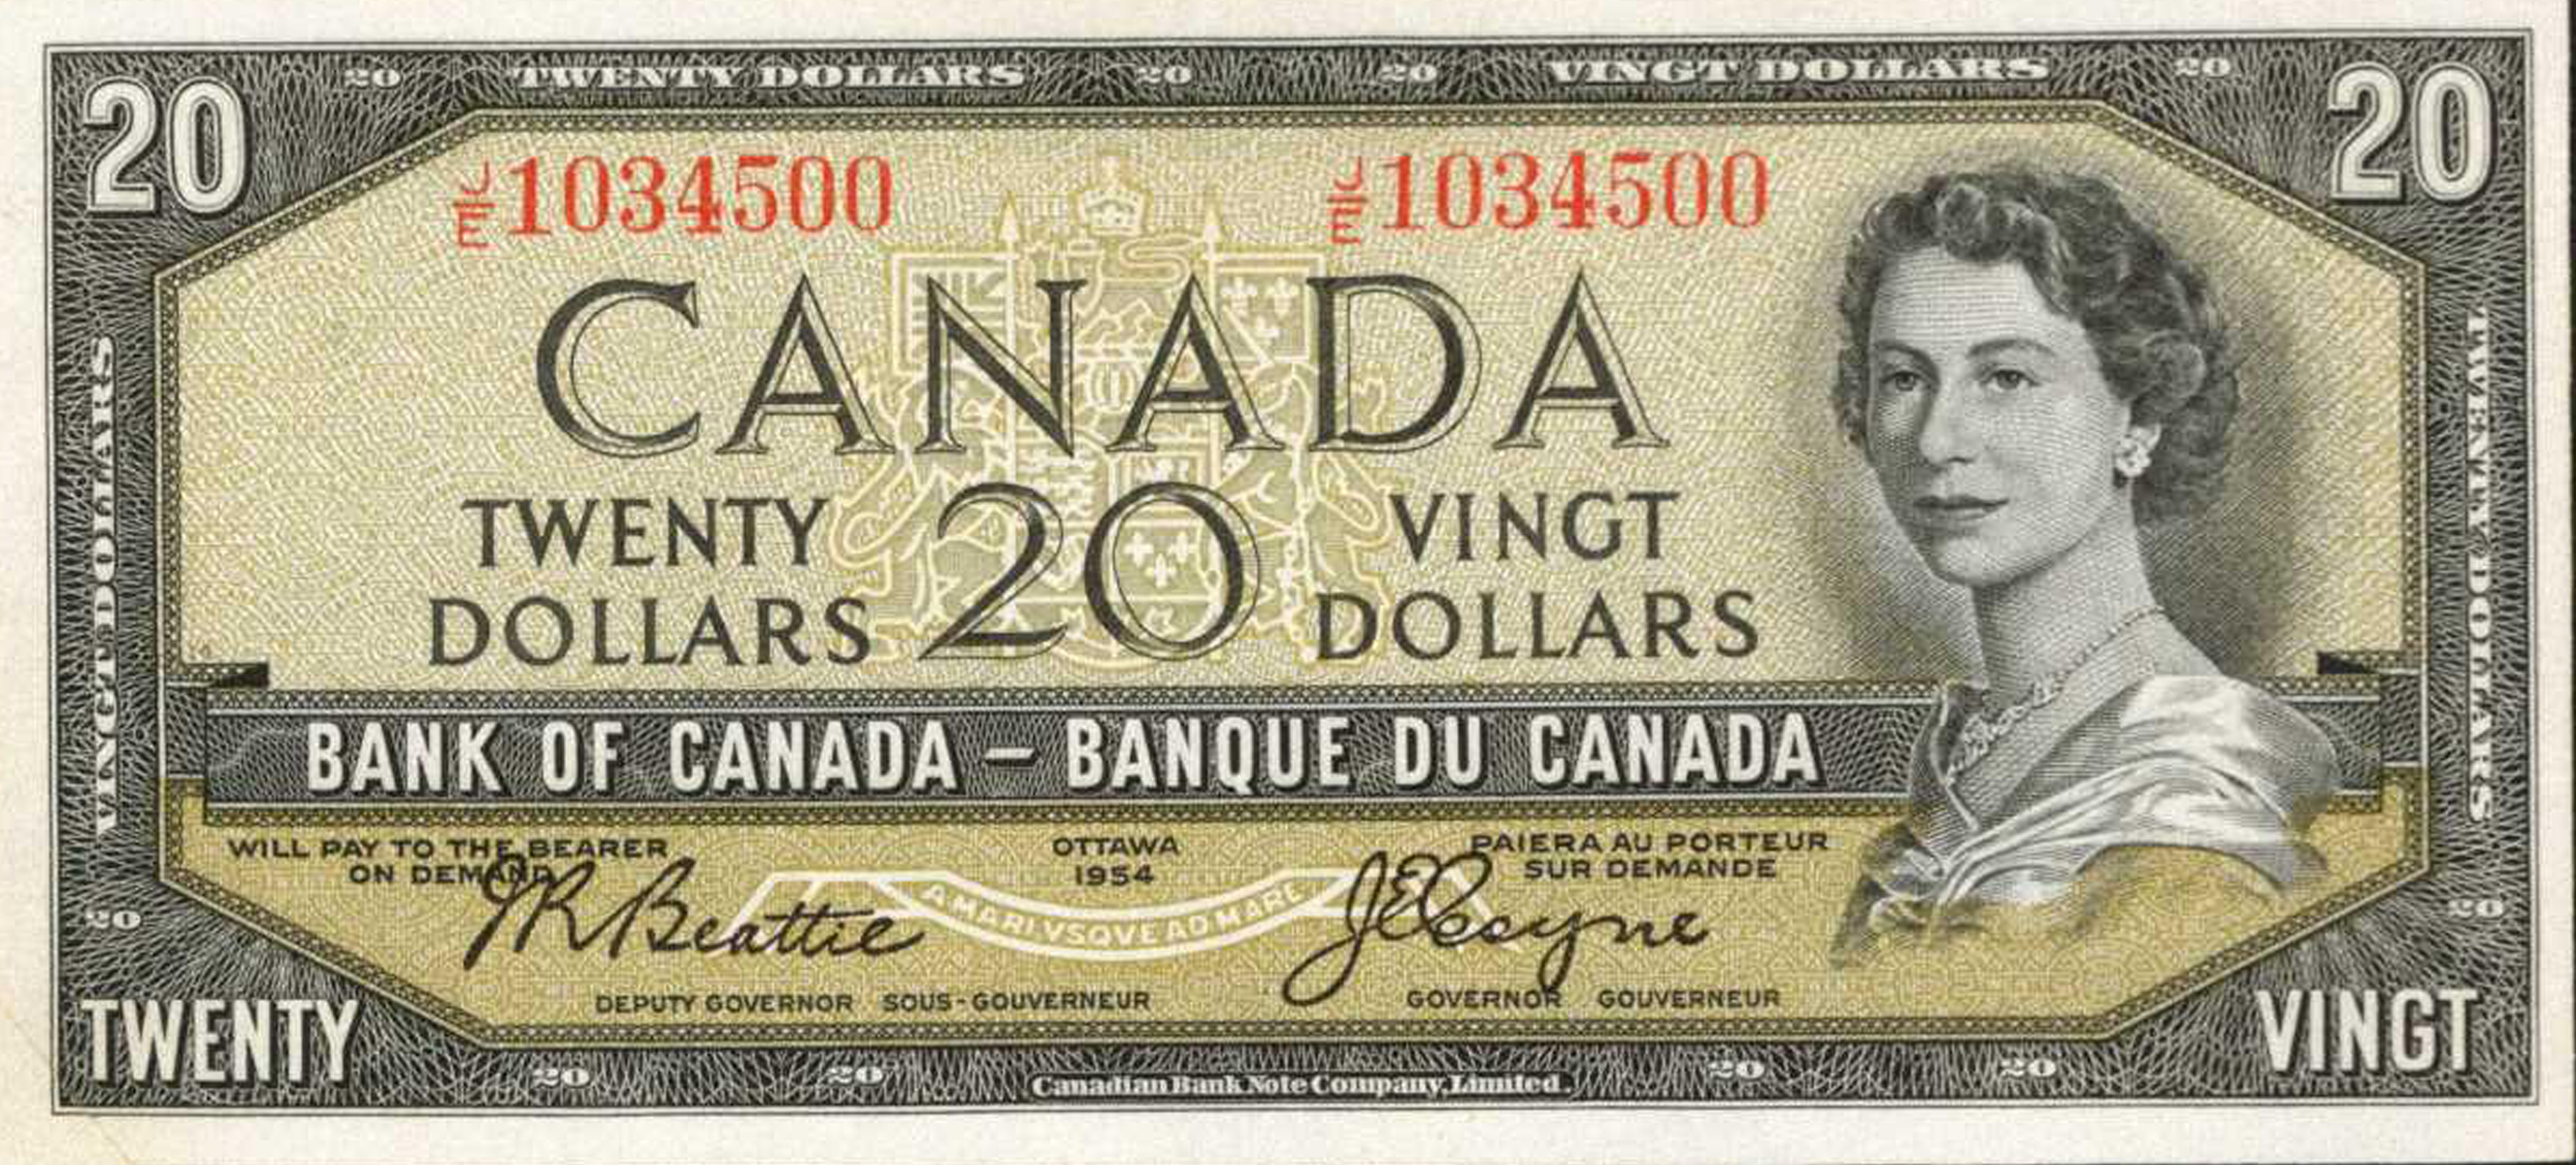 Value Of Devils Face 20 Bill From The Bank Of Canada